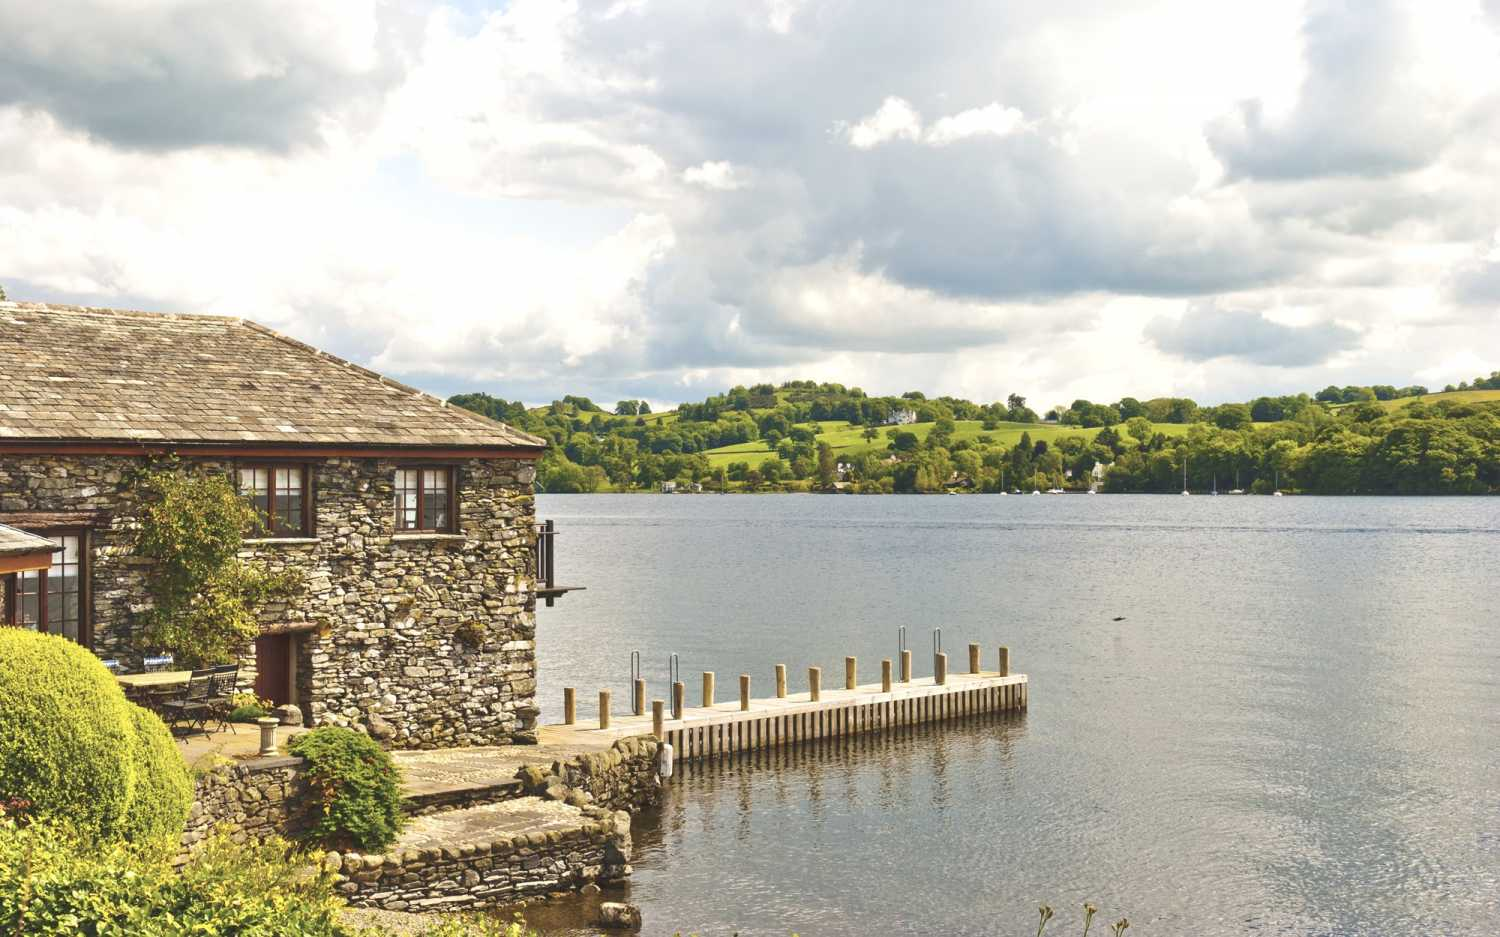 Picture of Staffordshire - Last Minute Cottages in Staffordshire